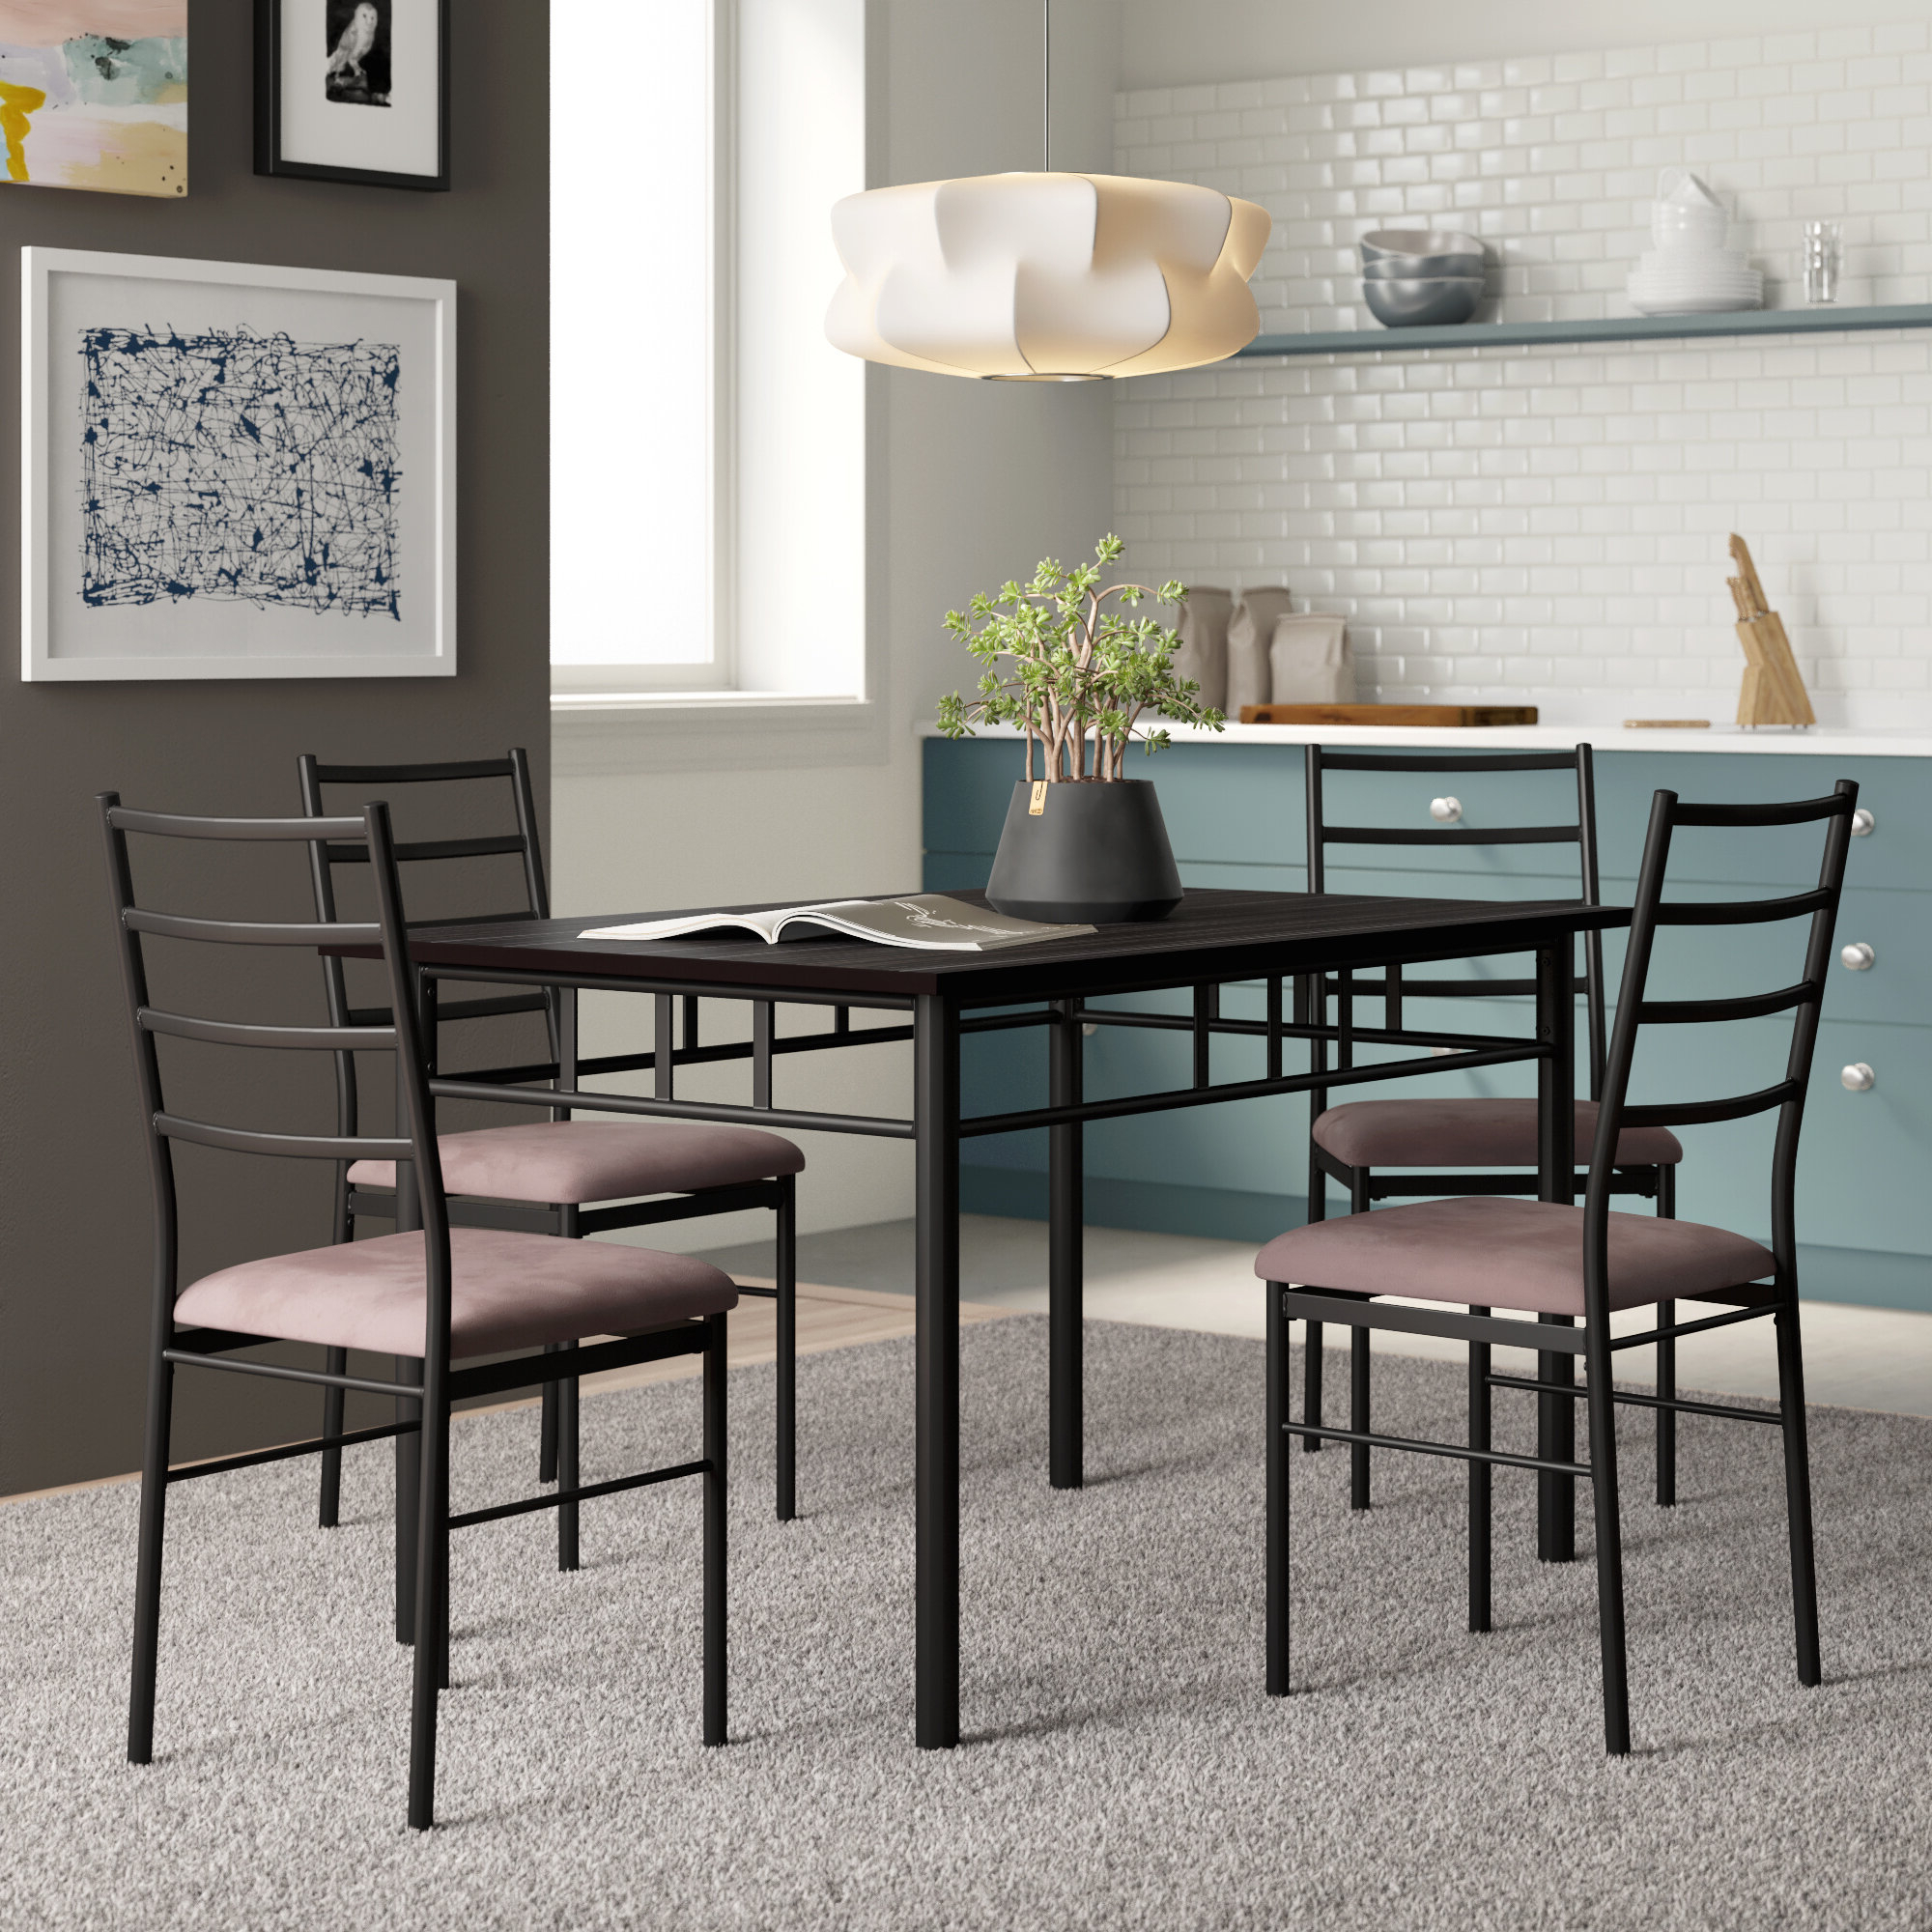 Kieffer 5 Piece Dining Sets Throughout Most Recent Zipcode Design Jarrod 5 Piece Dining Set & Reviews (View 8 of 25)